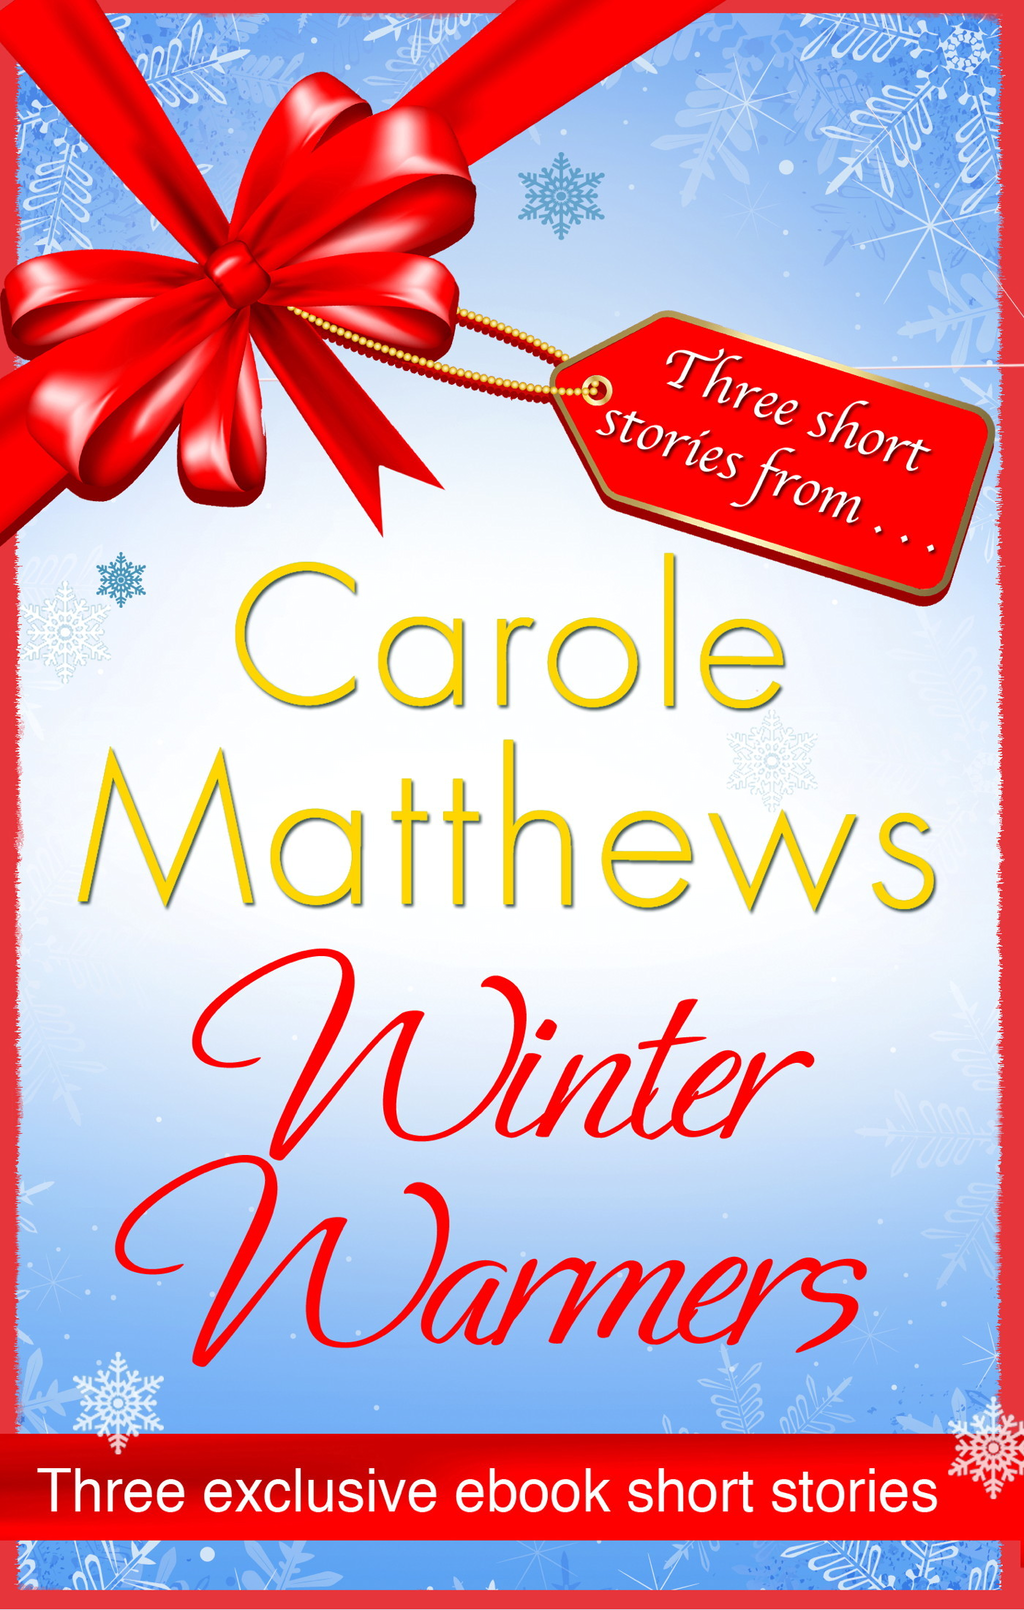 Winter Warmers An ebook exclusive from Carole Matthews